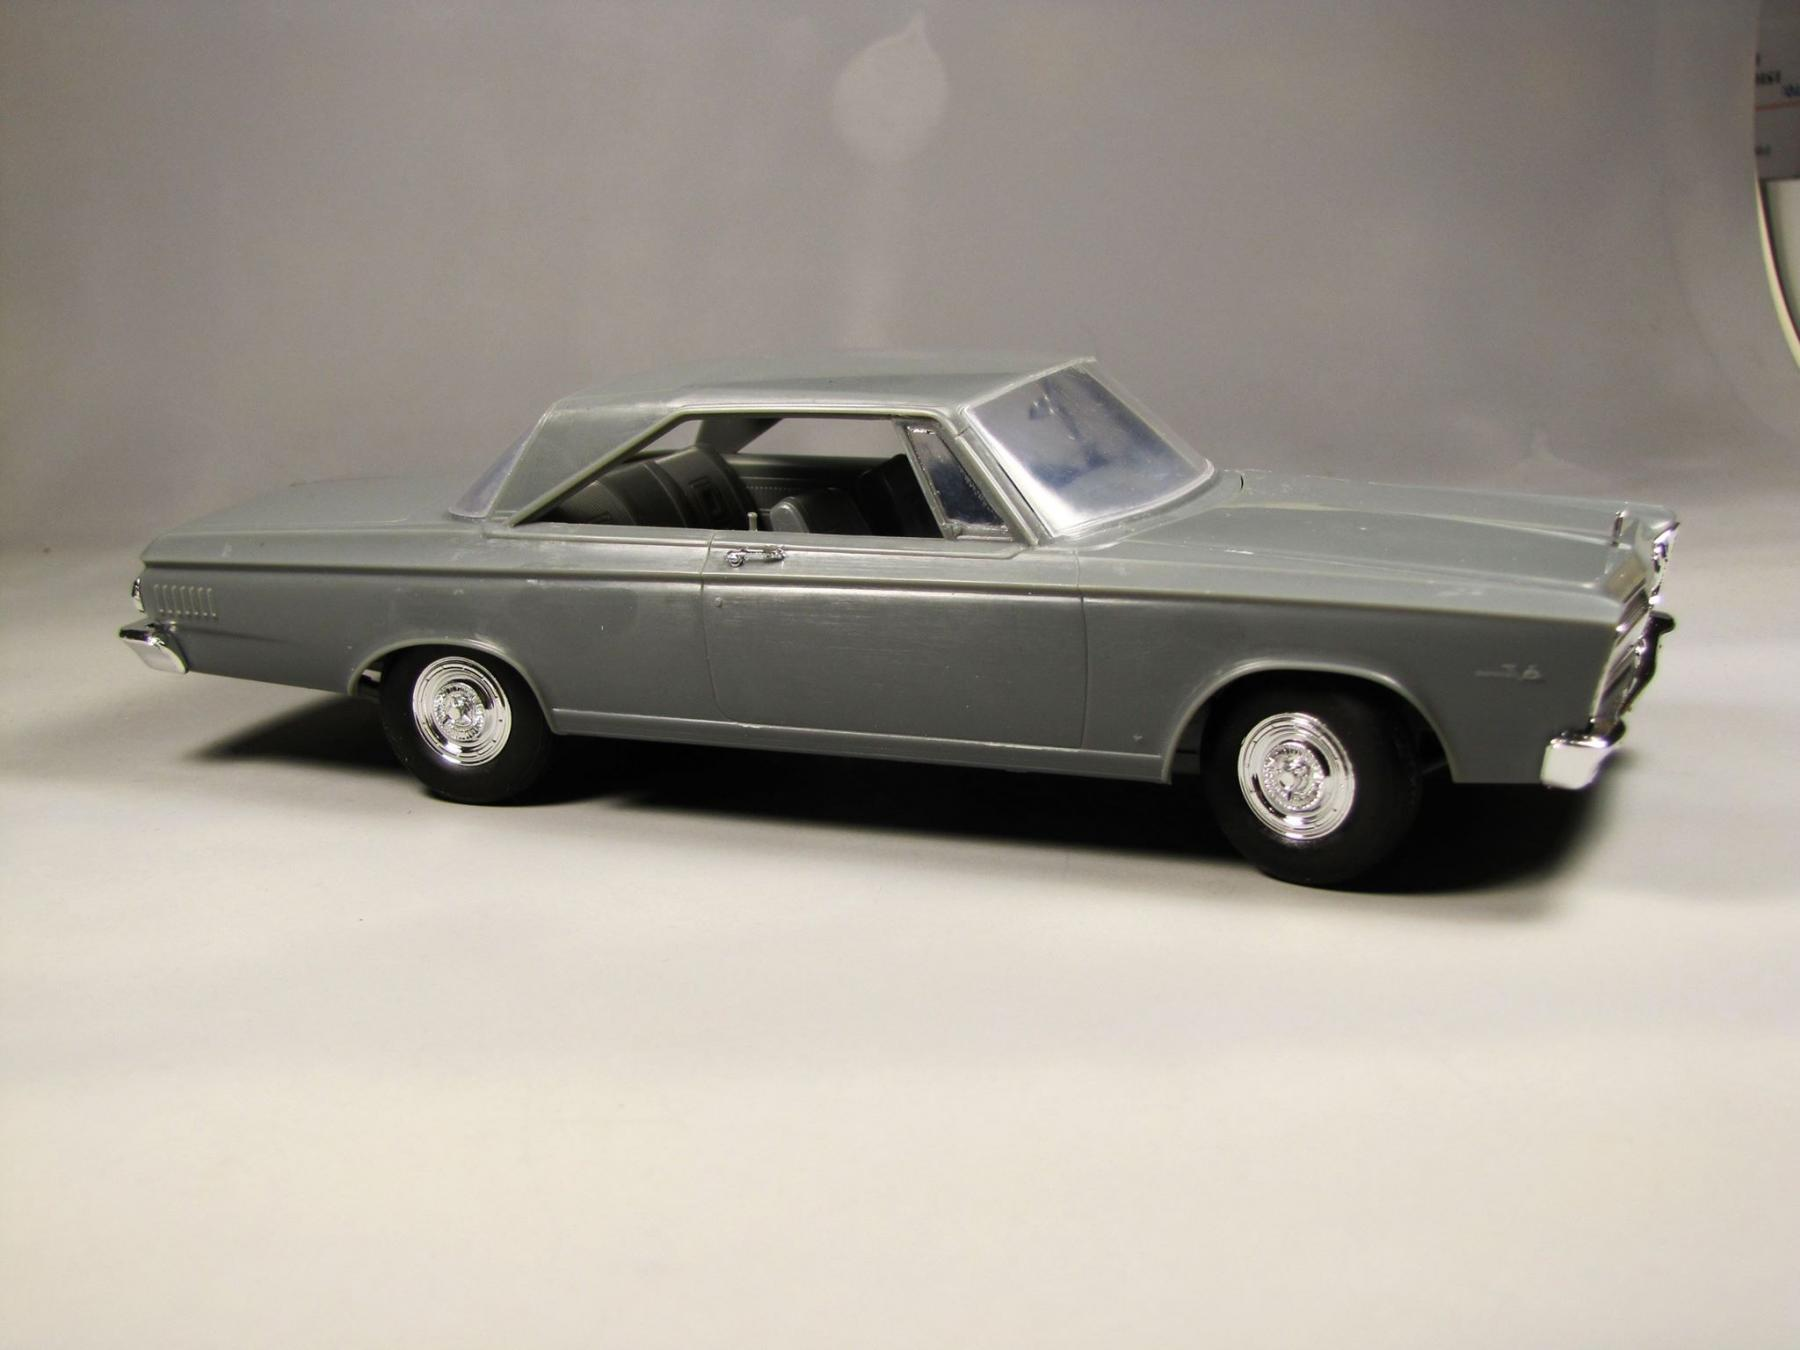 test shot moebius 1965 plymouth satellite 1 25 non slot models toys etc slotblog slotblog